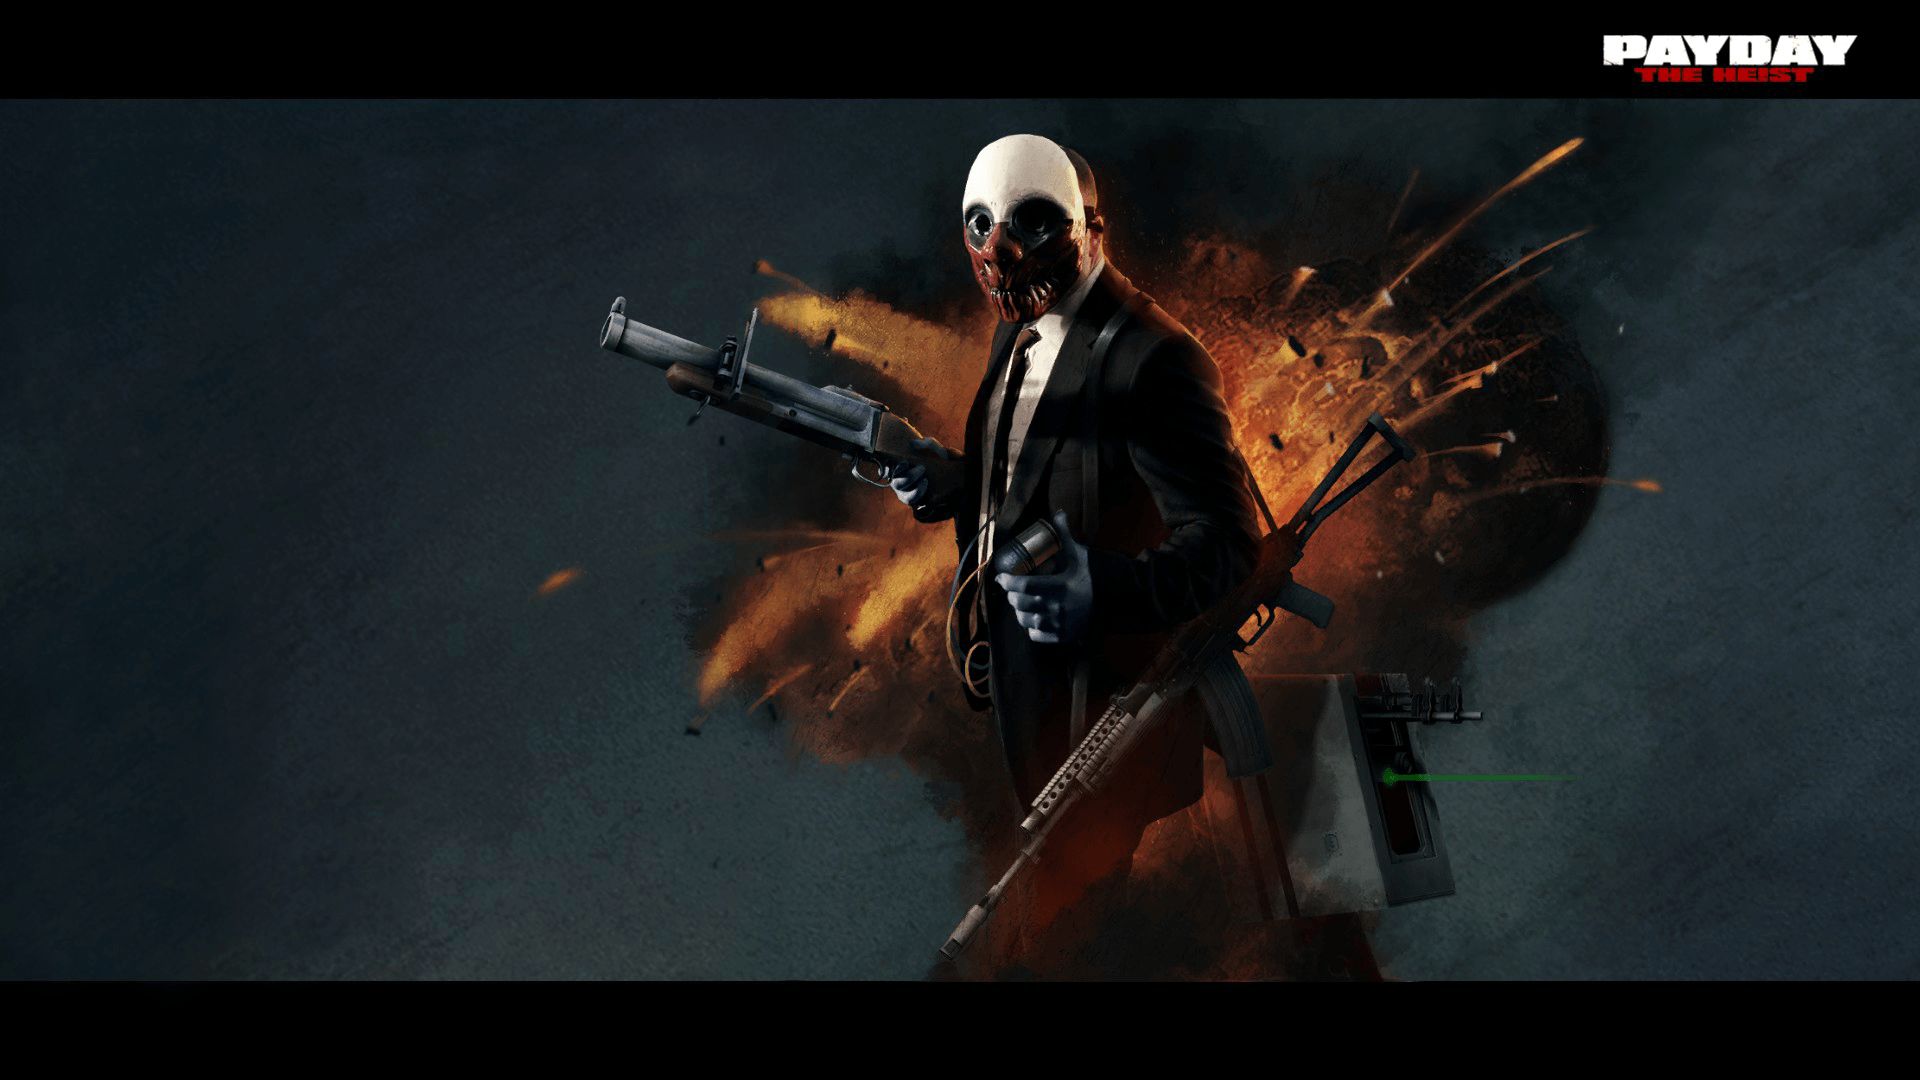 payday the heist wallpapers wallpaper cave